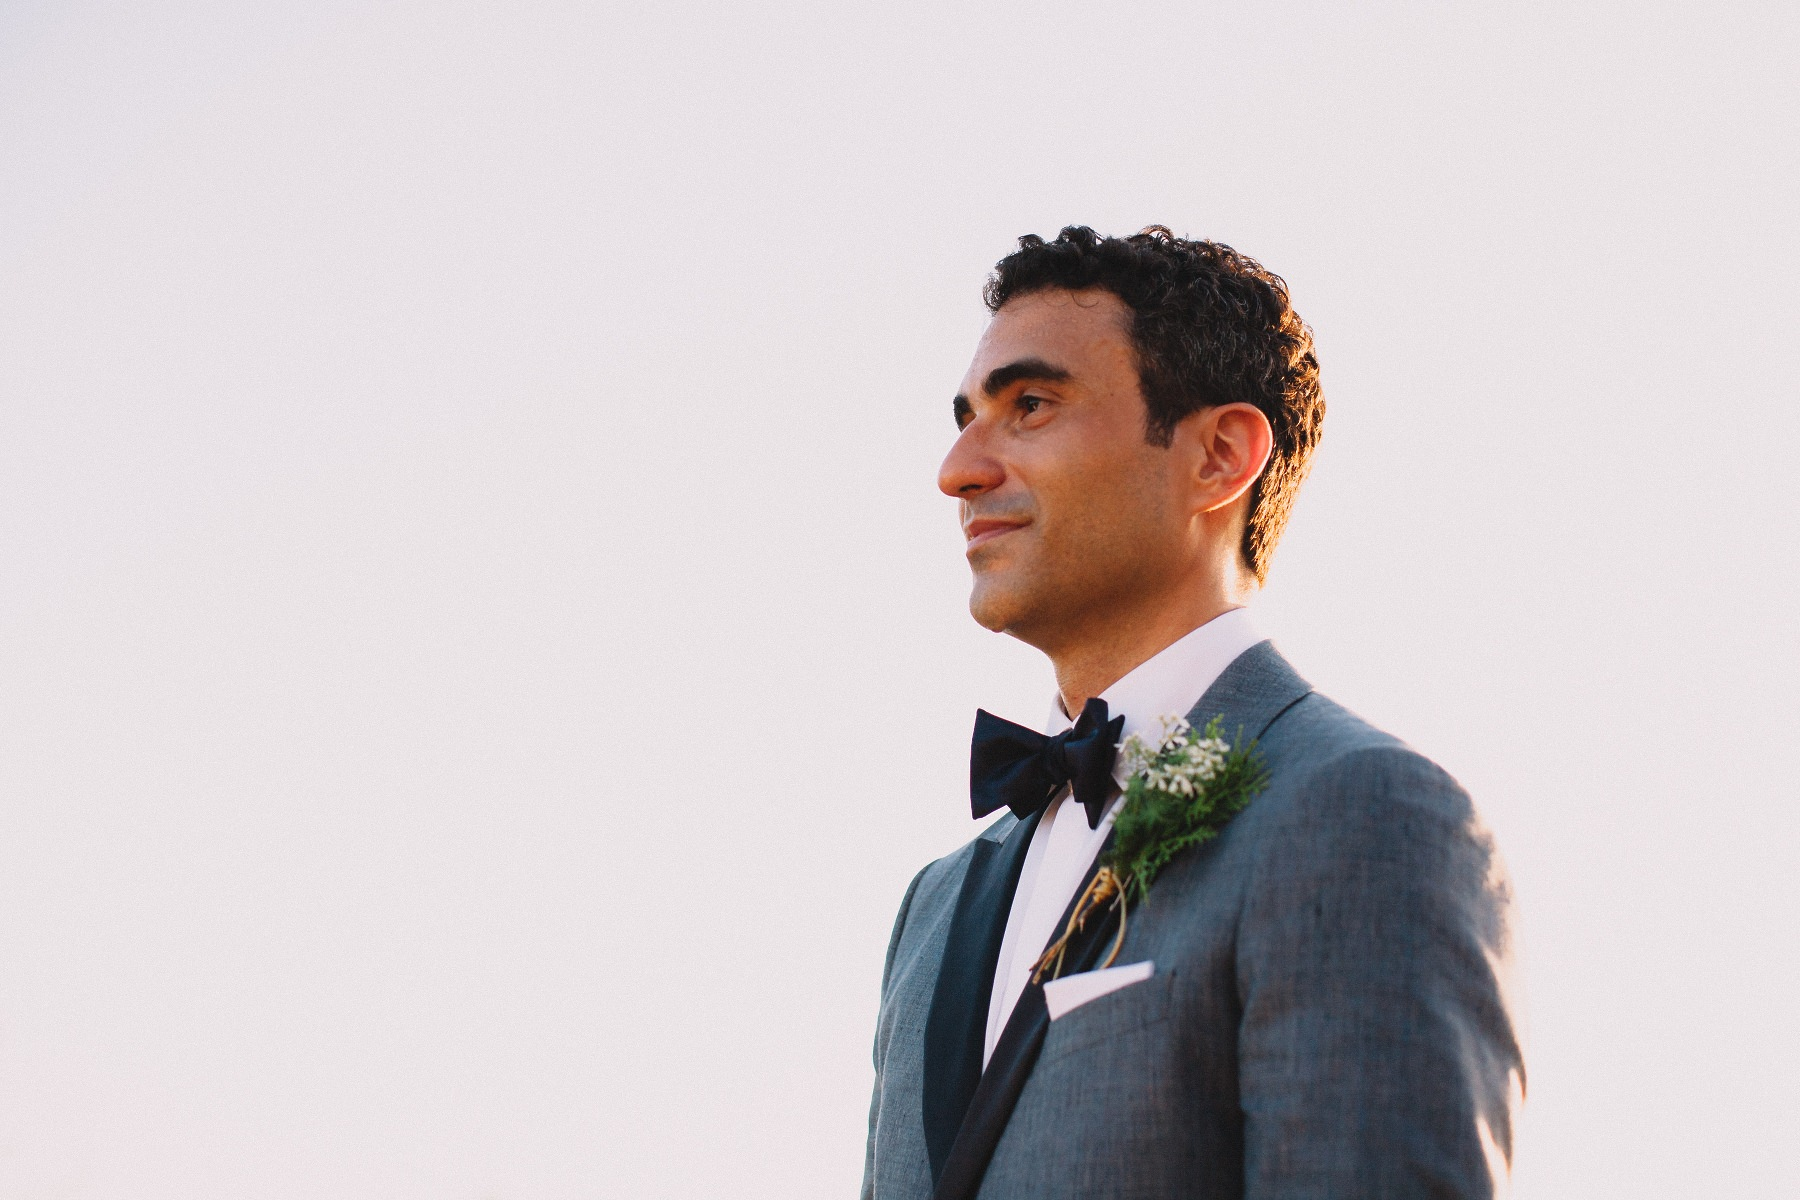 Groom in suit and bow-tie. elegant style tropical wedding